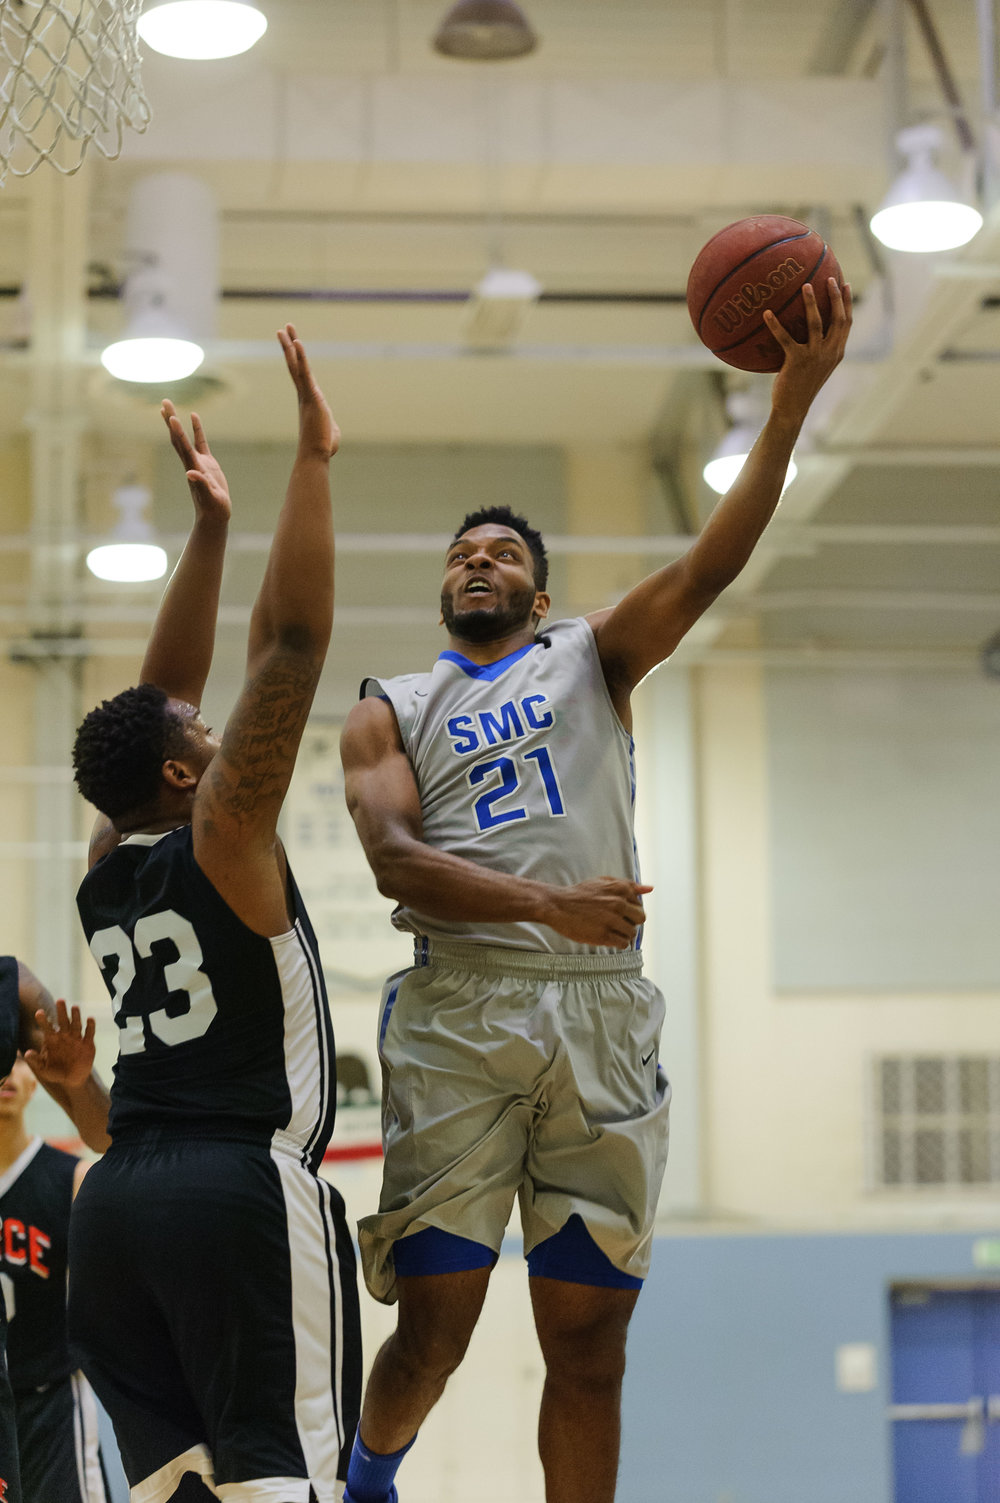 Forward Khalil Taylor (21,Right) of Santa Monica College goes up for a left-handed layup on a contest by Rashaad Johnson (23,Left) of Pierce College. The Santa Monica Corsairs lose their final game of the season 103-91 to the Pierce College Brahmas. The game was held at the SMC Pavilion at the Santa Monica College Main Campus in Santa Monica, Calif.. February 17, 2018. (Photo by: Justin Han/Corsair Staff)